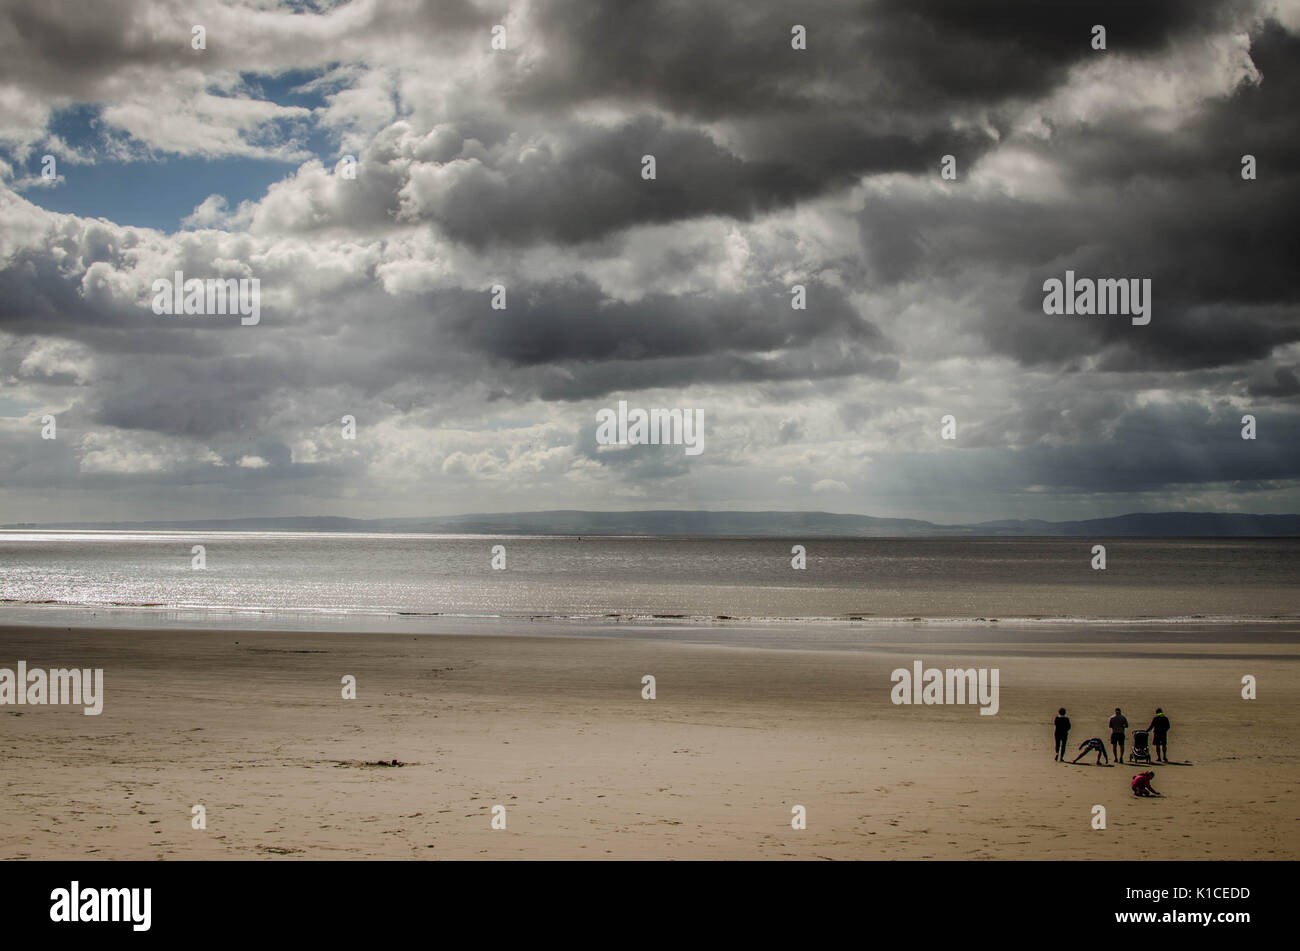 The beach at Whitmore Bay, Barry Island, Vale of Glamorgan, Wales. Stock Photo